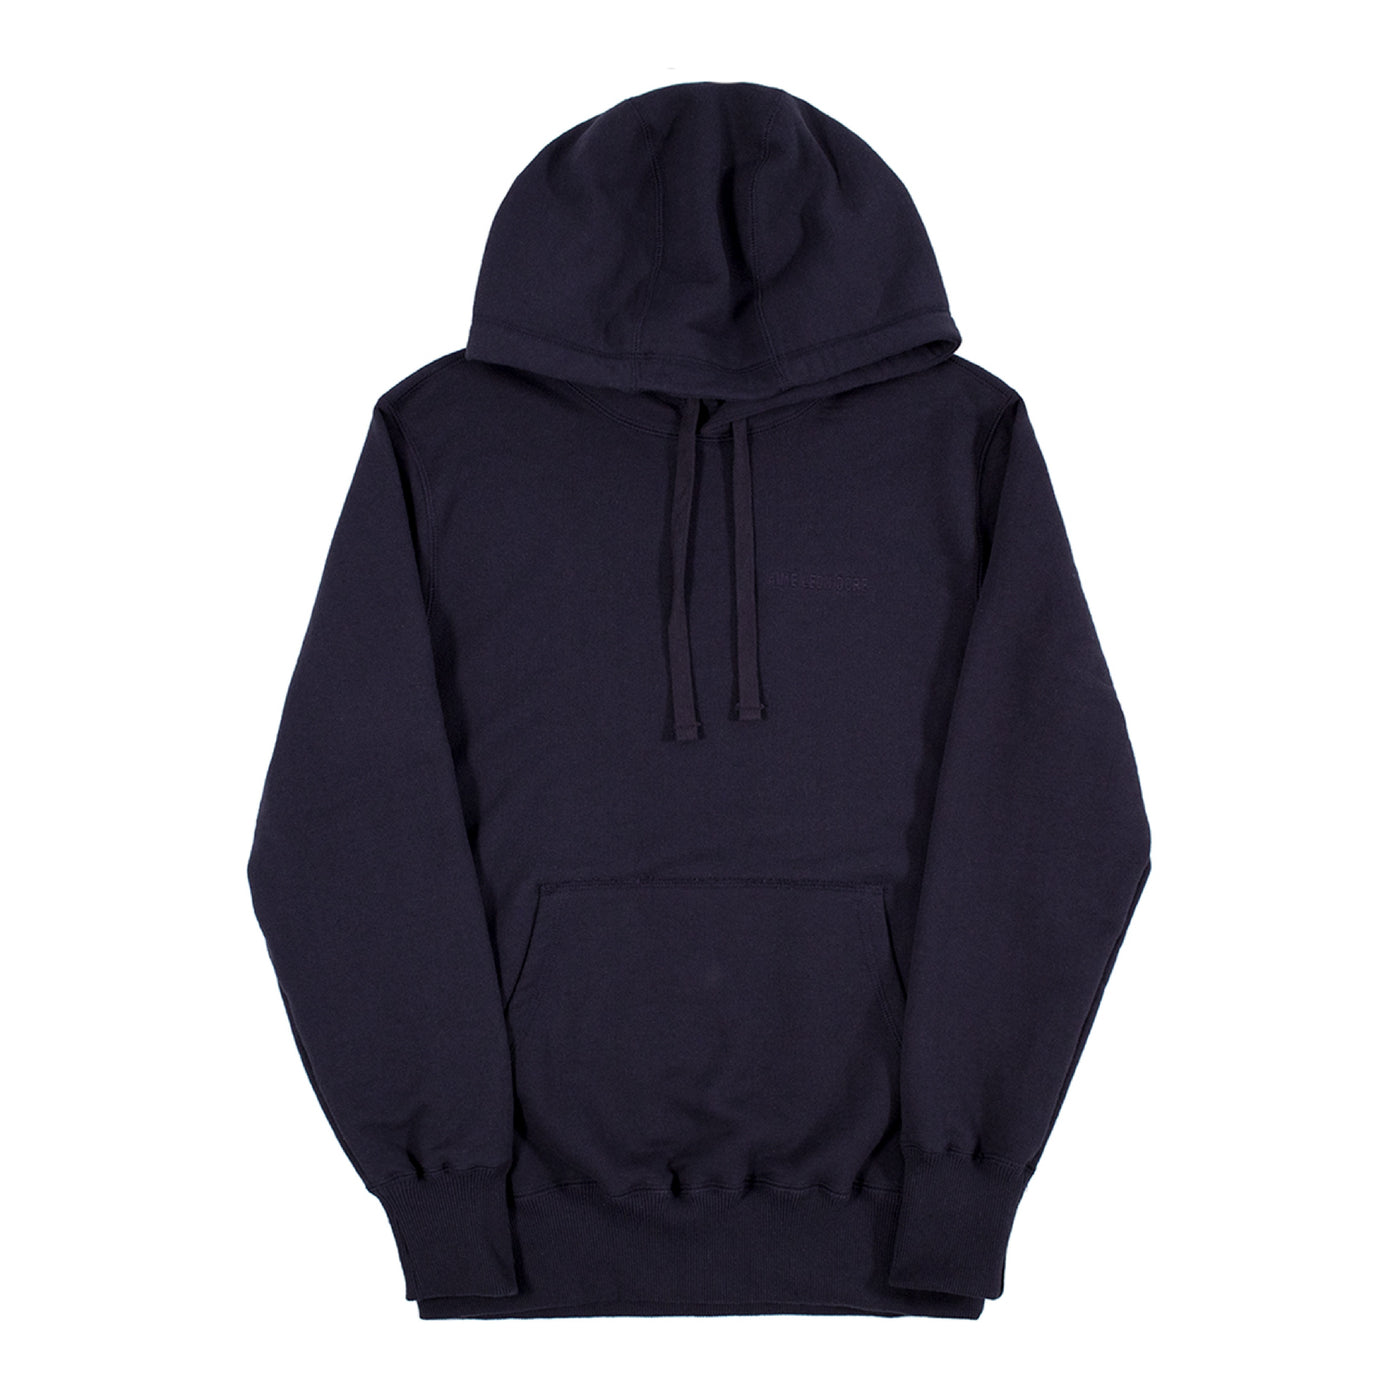 Load image into Gallery viewer, AIMÉ LEON DORE HOODIE SWEATSHIRT NAVY